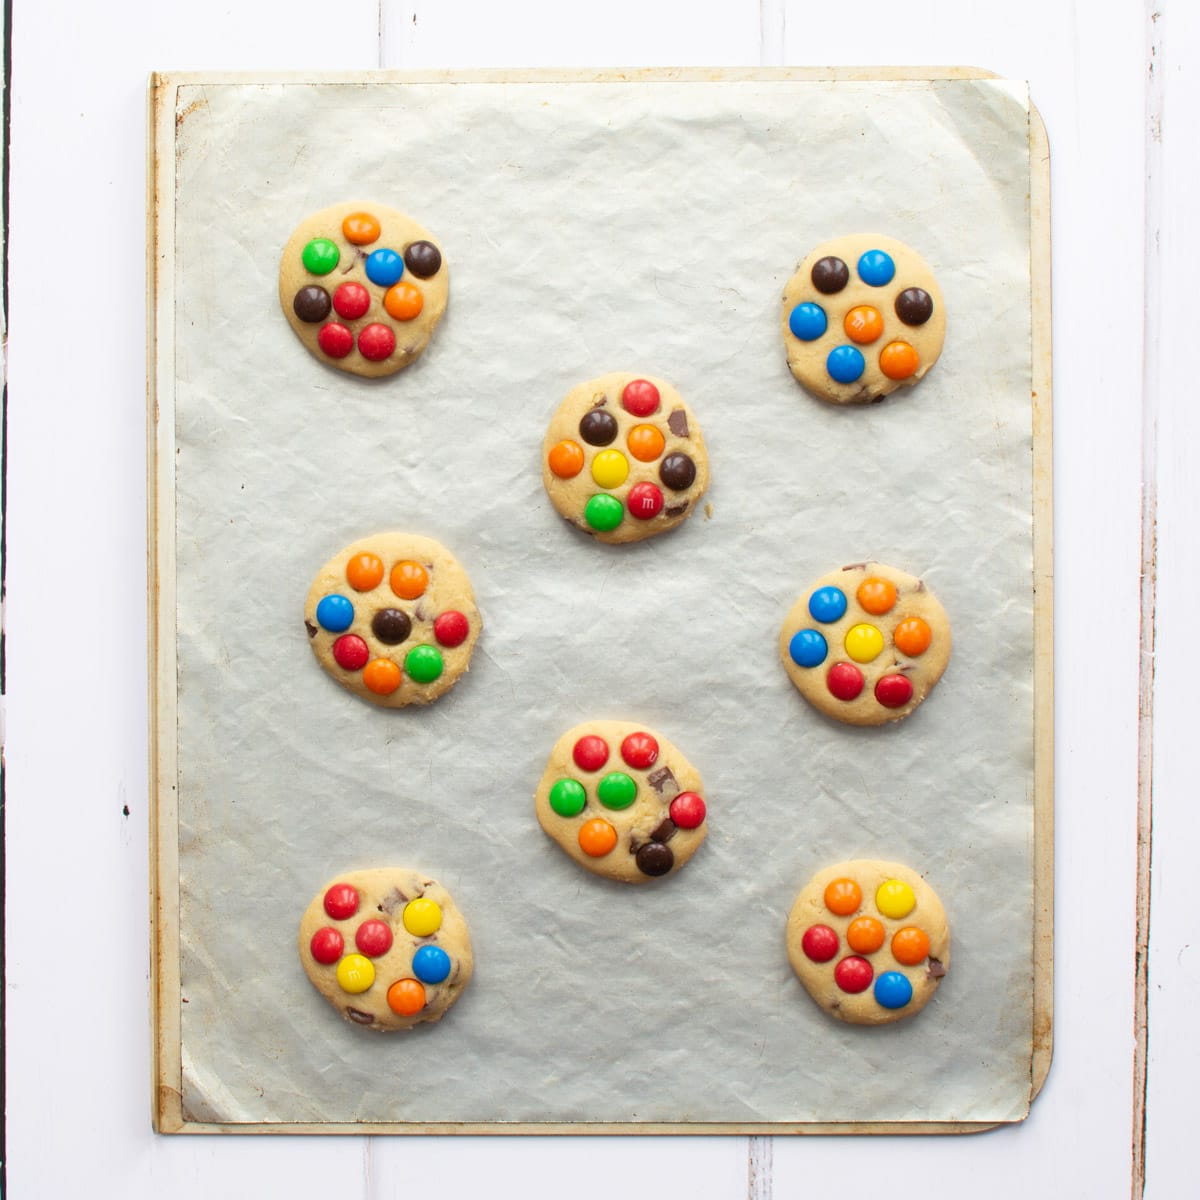 M&Ms Cookies on the tray ready to bake. There's a large gap between the cookies to allow them to spread in the oven.